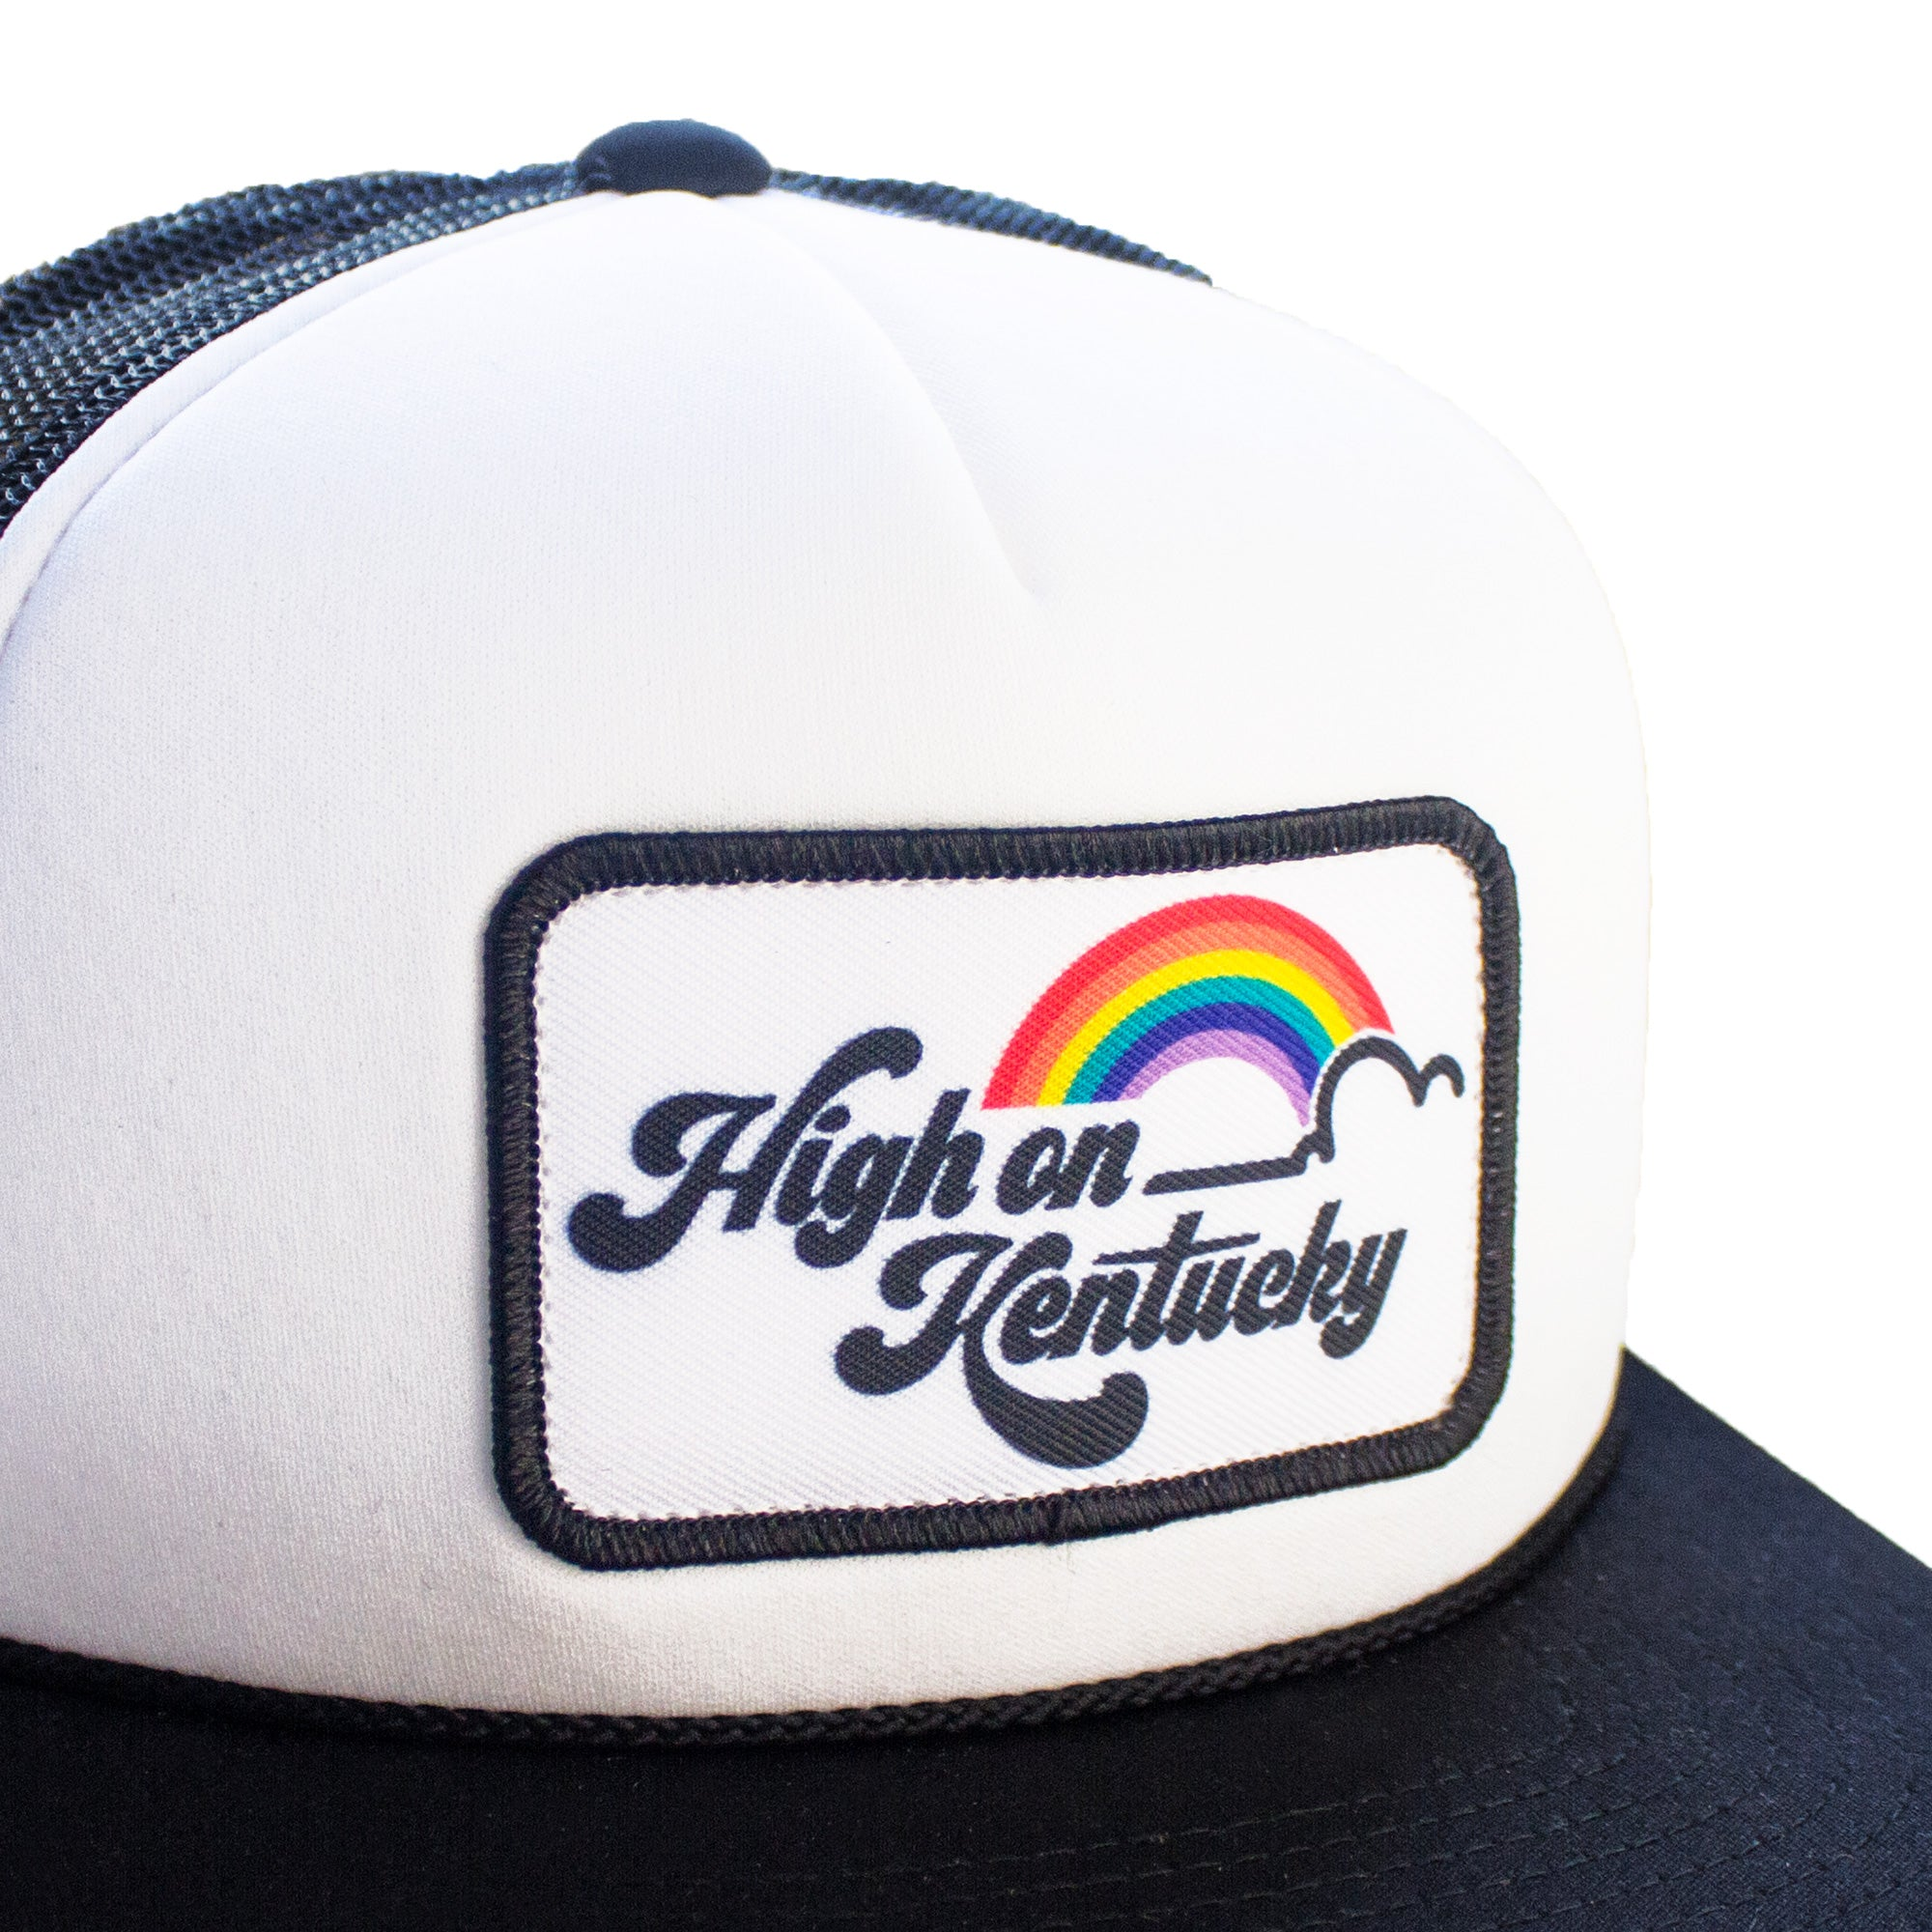 High on KY Trucker Hat-Hat-KY for KY Store